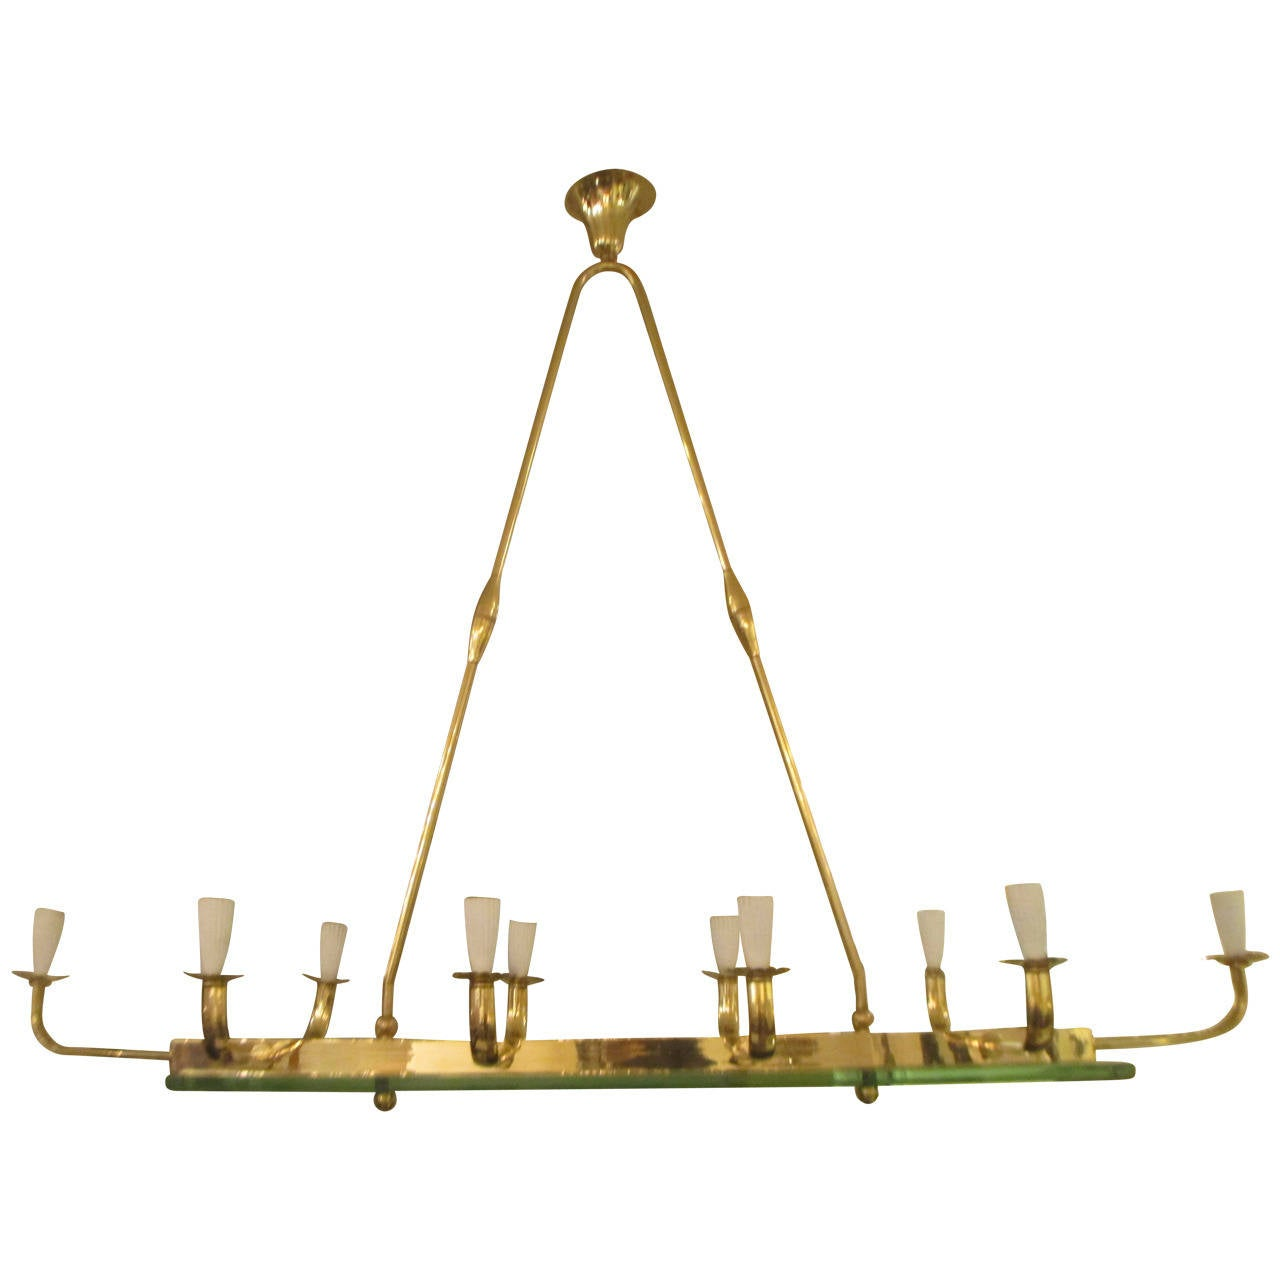 exquisite lighting. exquisite midcentury modern tenlight brass and glass chandelier 1 lighting